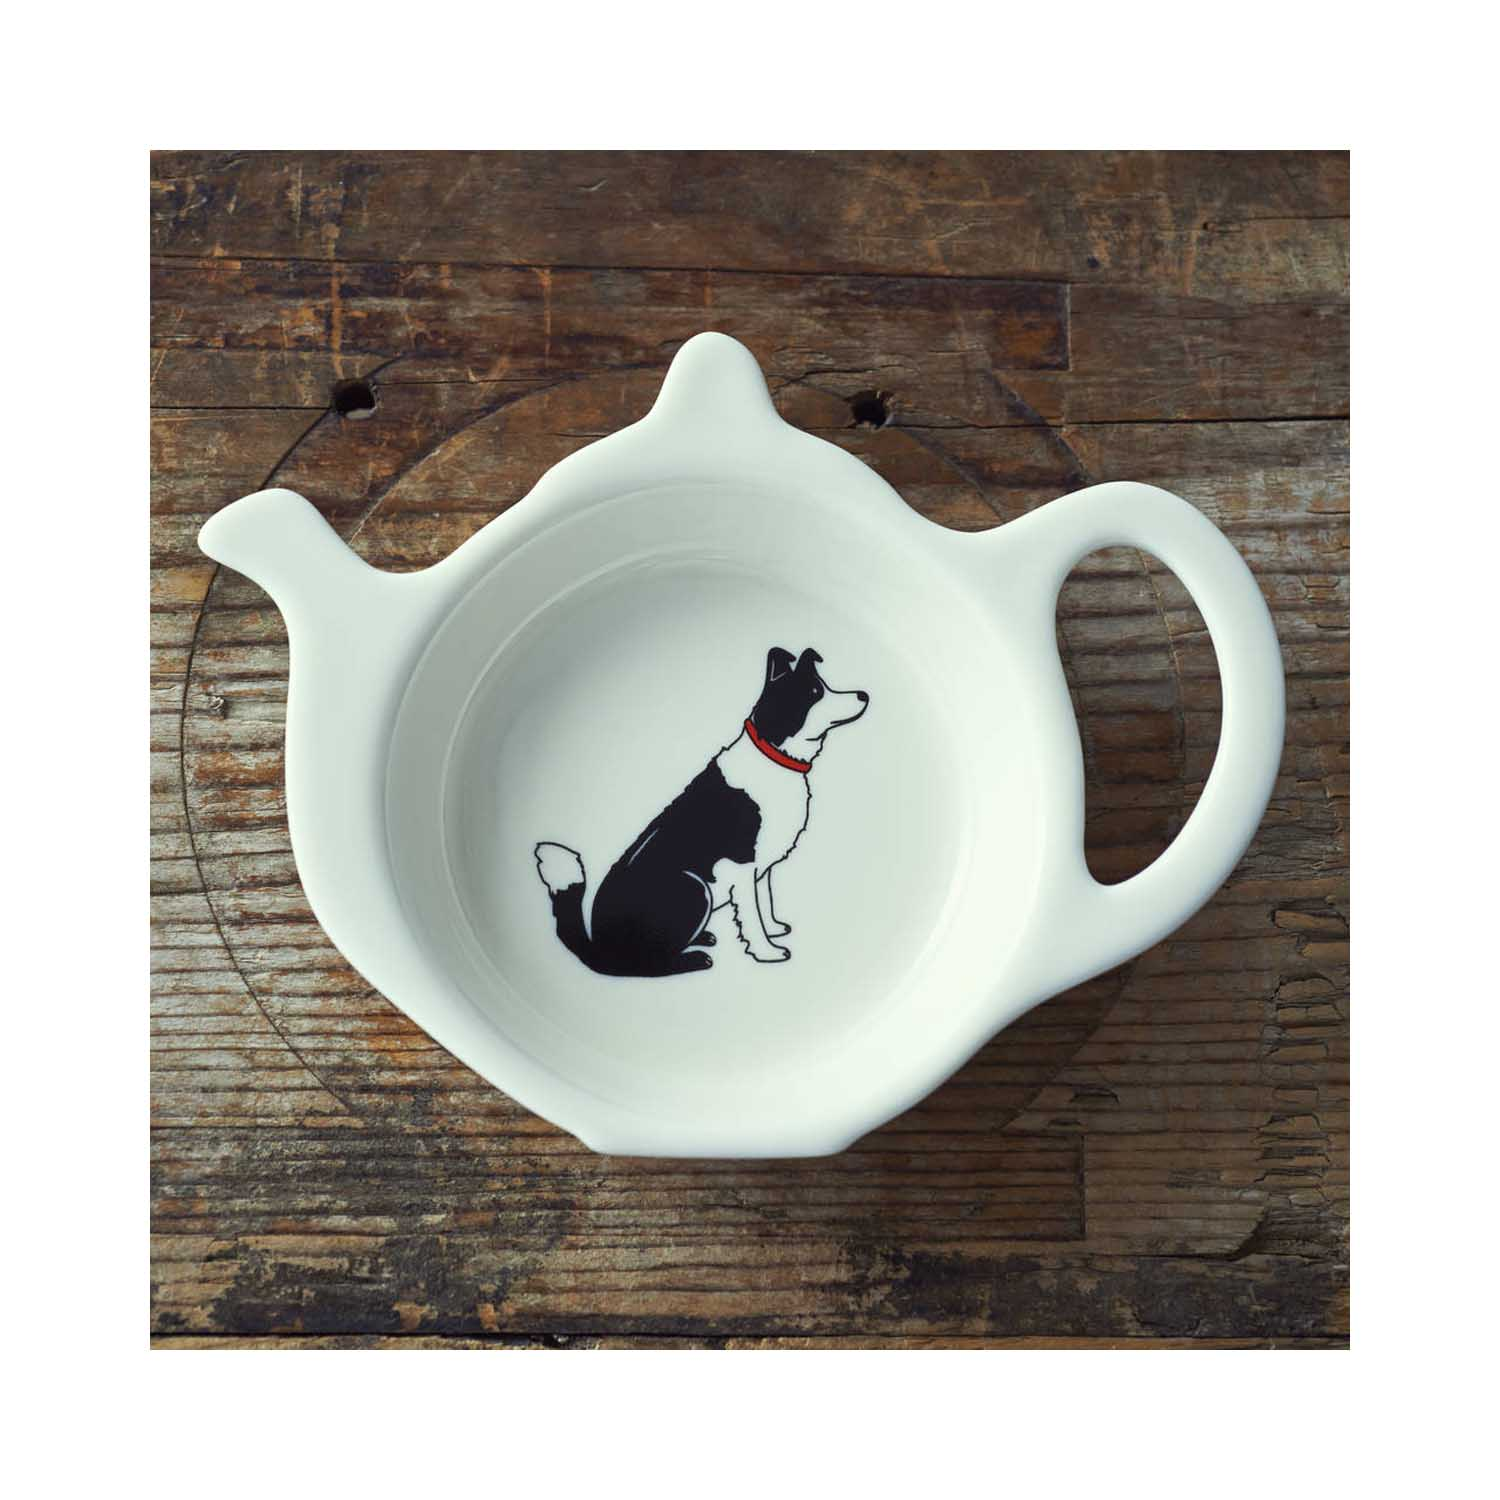 Dog Lover Gifts available at Dog Krazy Gifts - Lola the Border Collie Teabag Dish - part of the Sweet William range available from www.DogKrazyGifts.co.uk